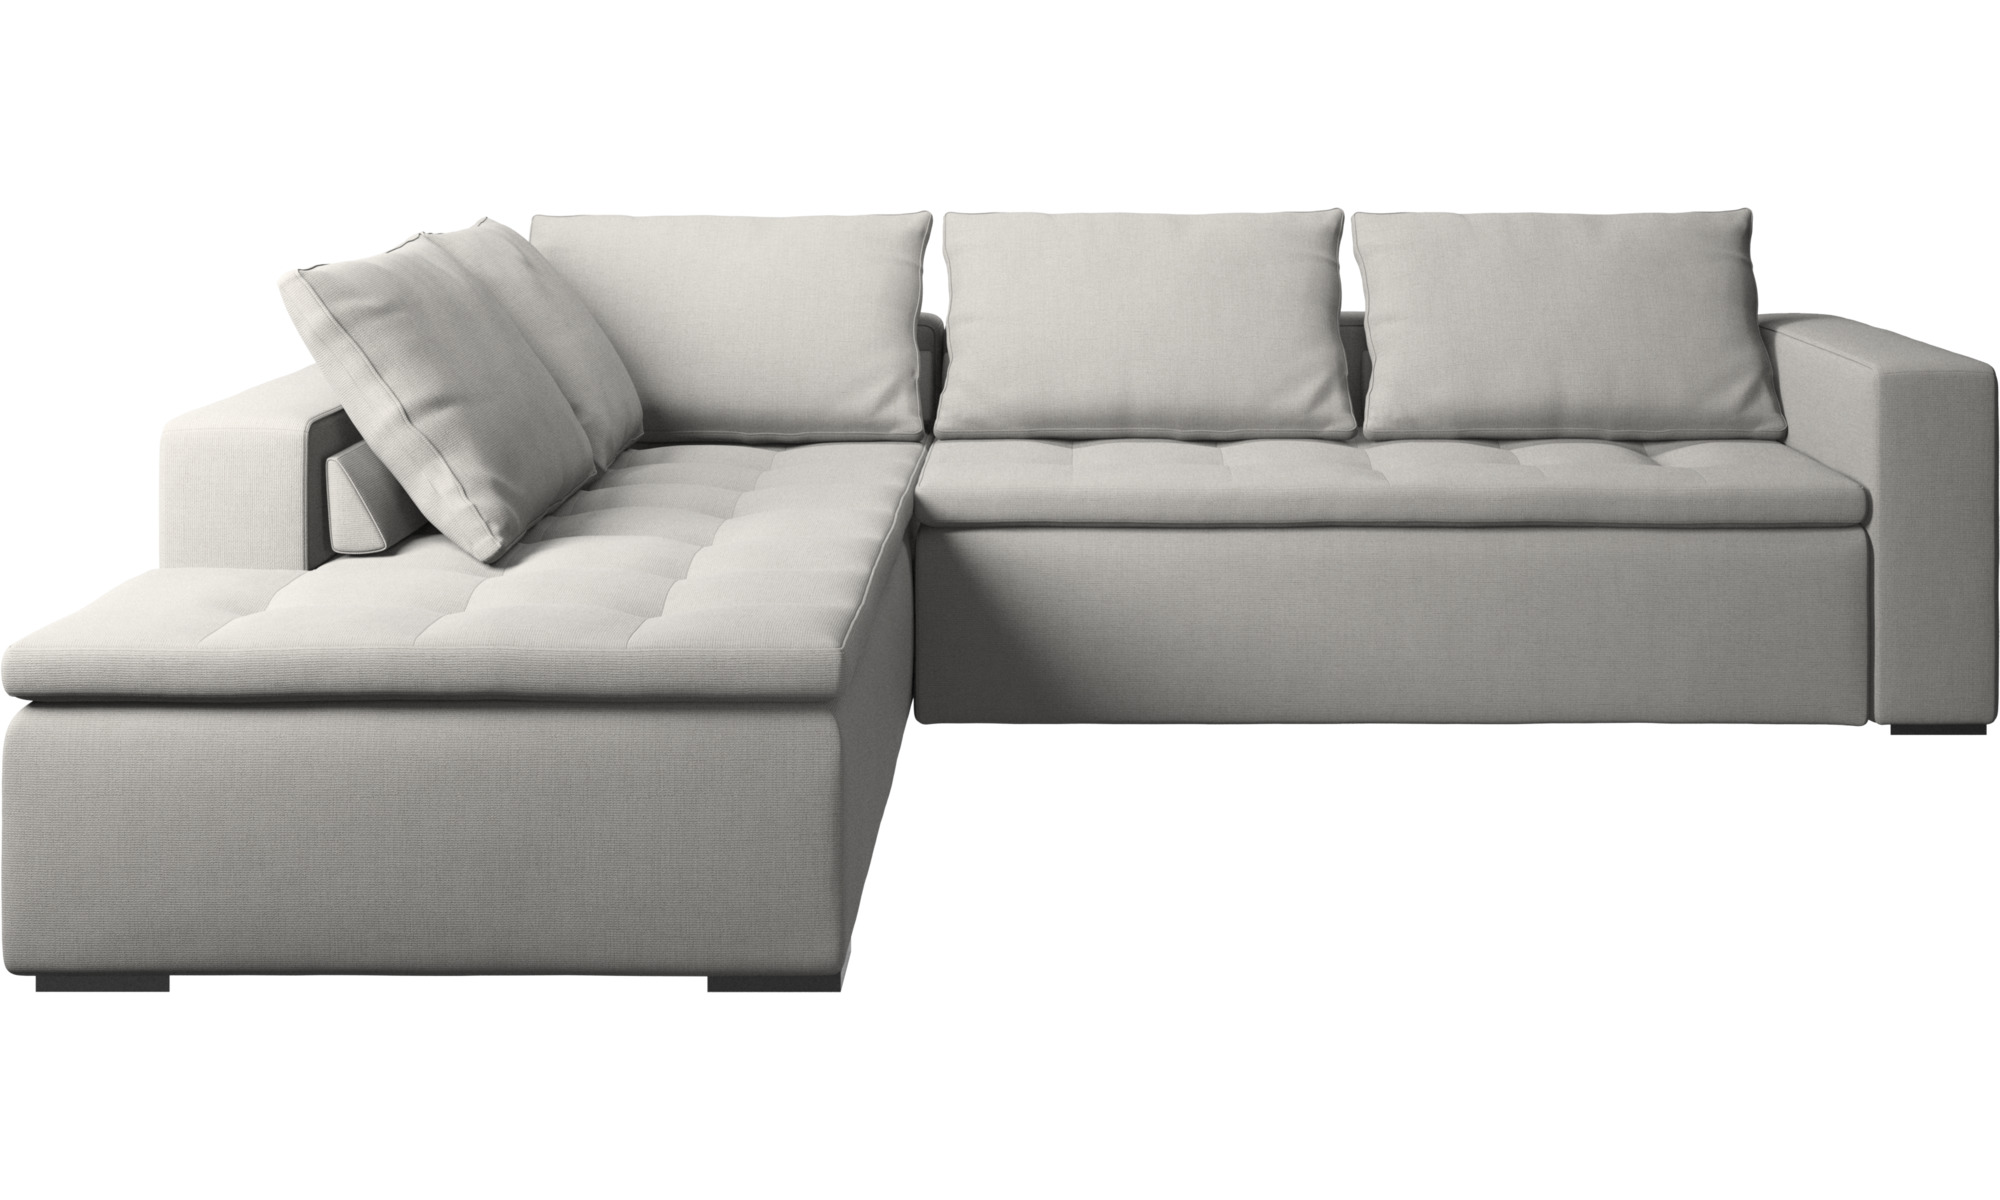 Sofas with open end mezzo corner sofa with lounging unit boconcept Loveseats with console